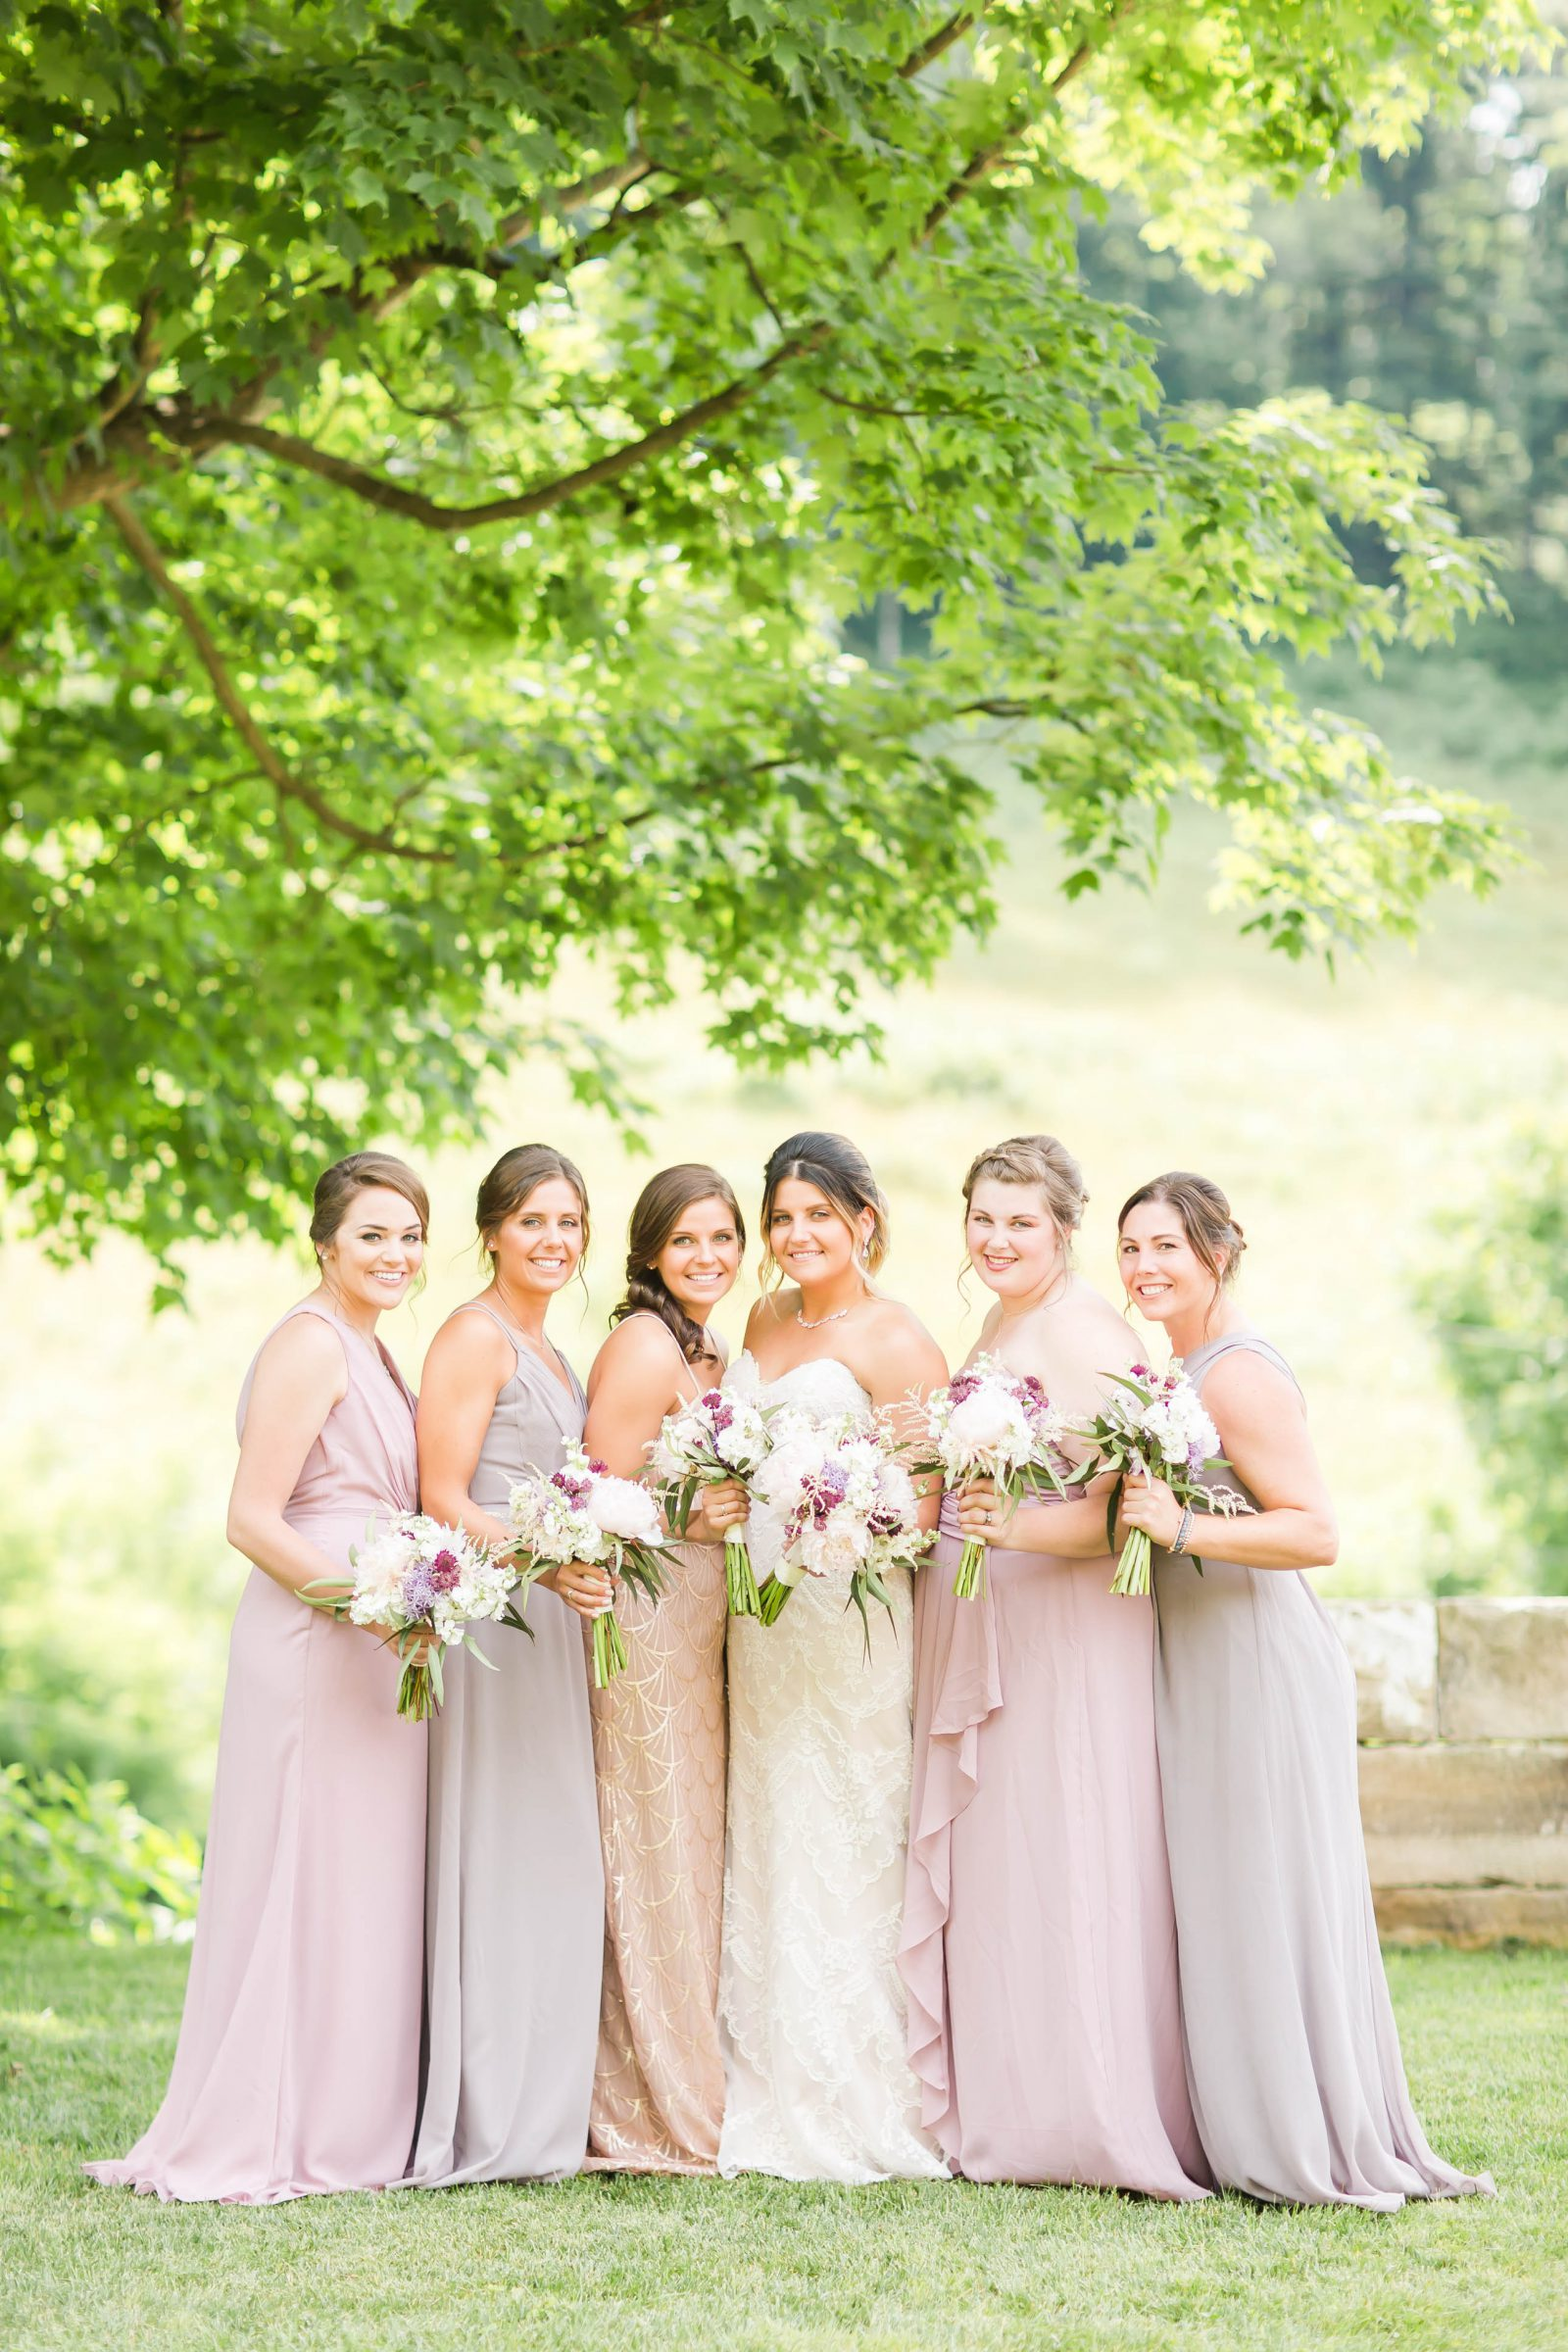 rivercrest-farm-summer-wedding-loren-jackson-photography-59